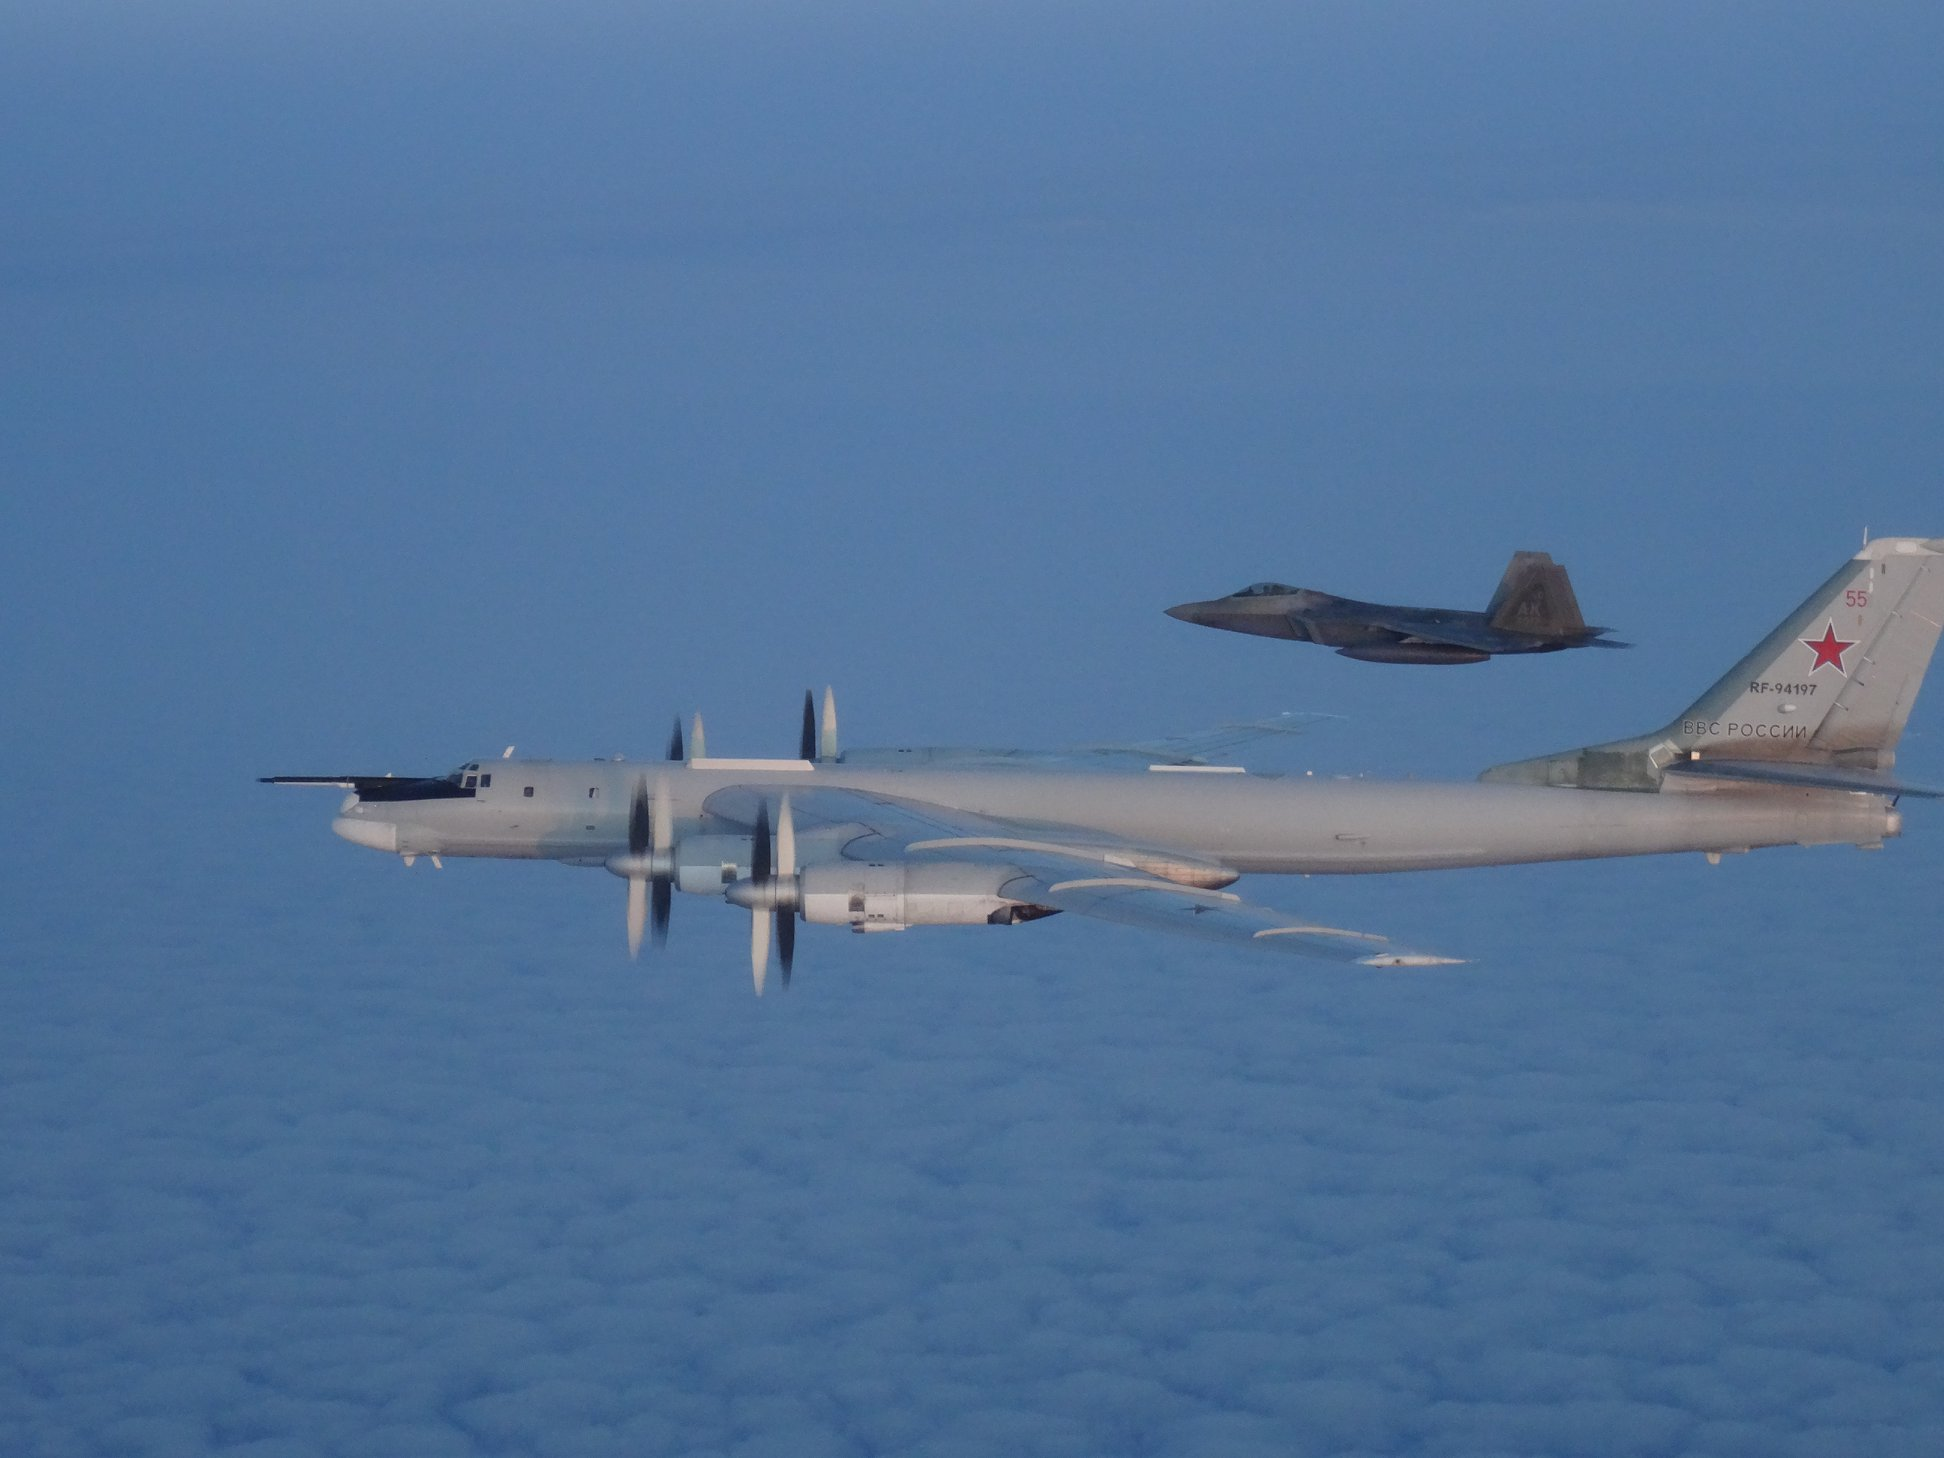 U.S. fighter jets intercept Russian bombers near Alaska